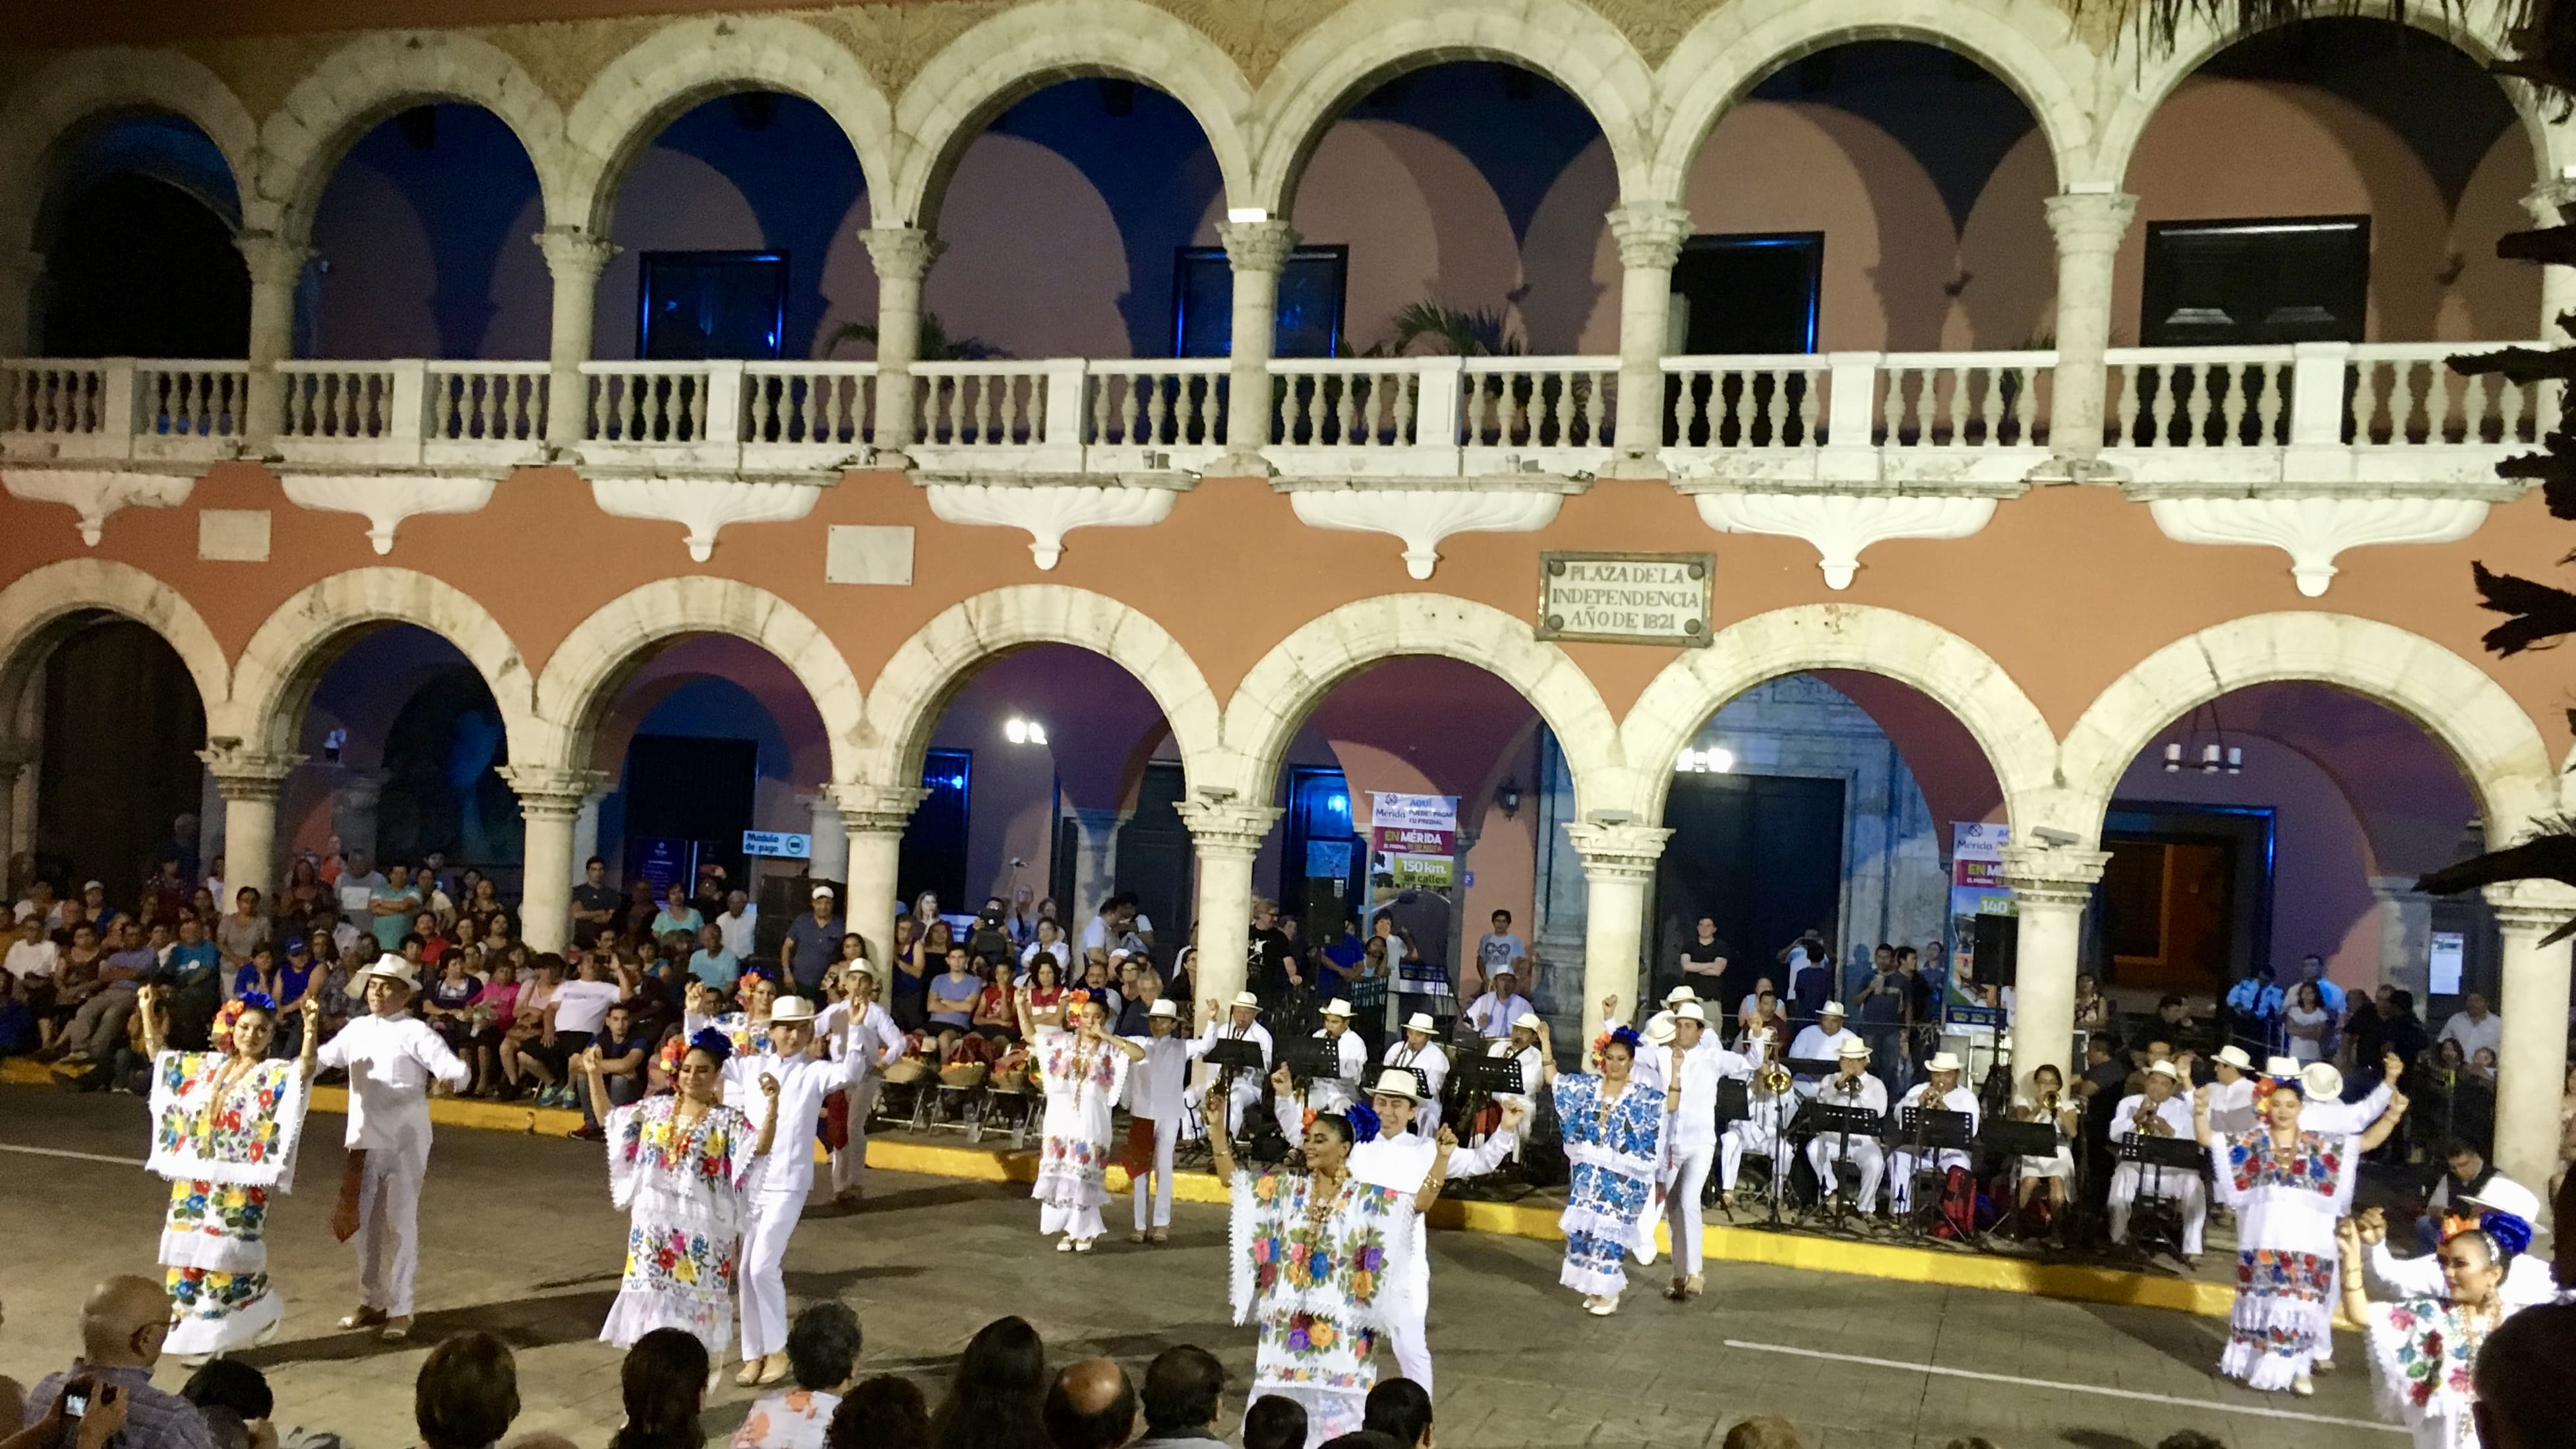 vaqueros show on the main square of Mérida, Mexico